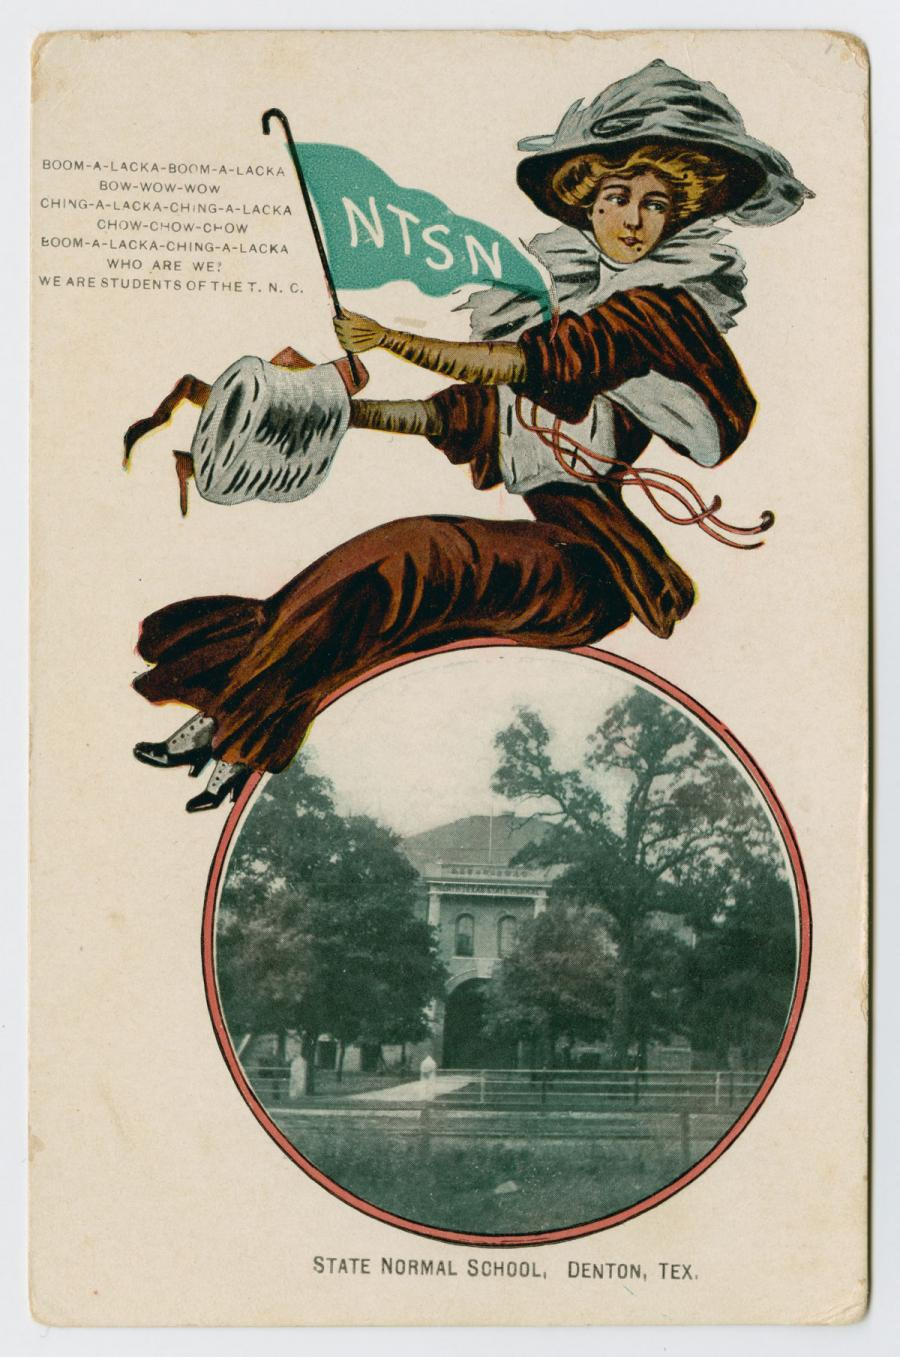 A card with a photo of a building behind some trees in a circle at the bottom. Sitting on the circle is an illustration of a woman wearing a hat. The woman holds a green flag with the letters NTSN on it.